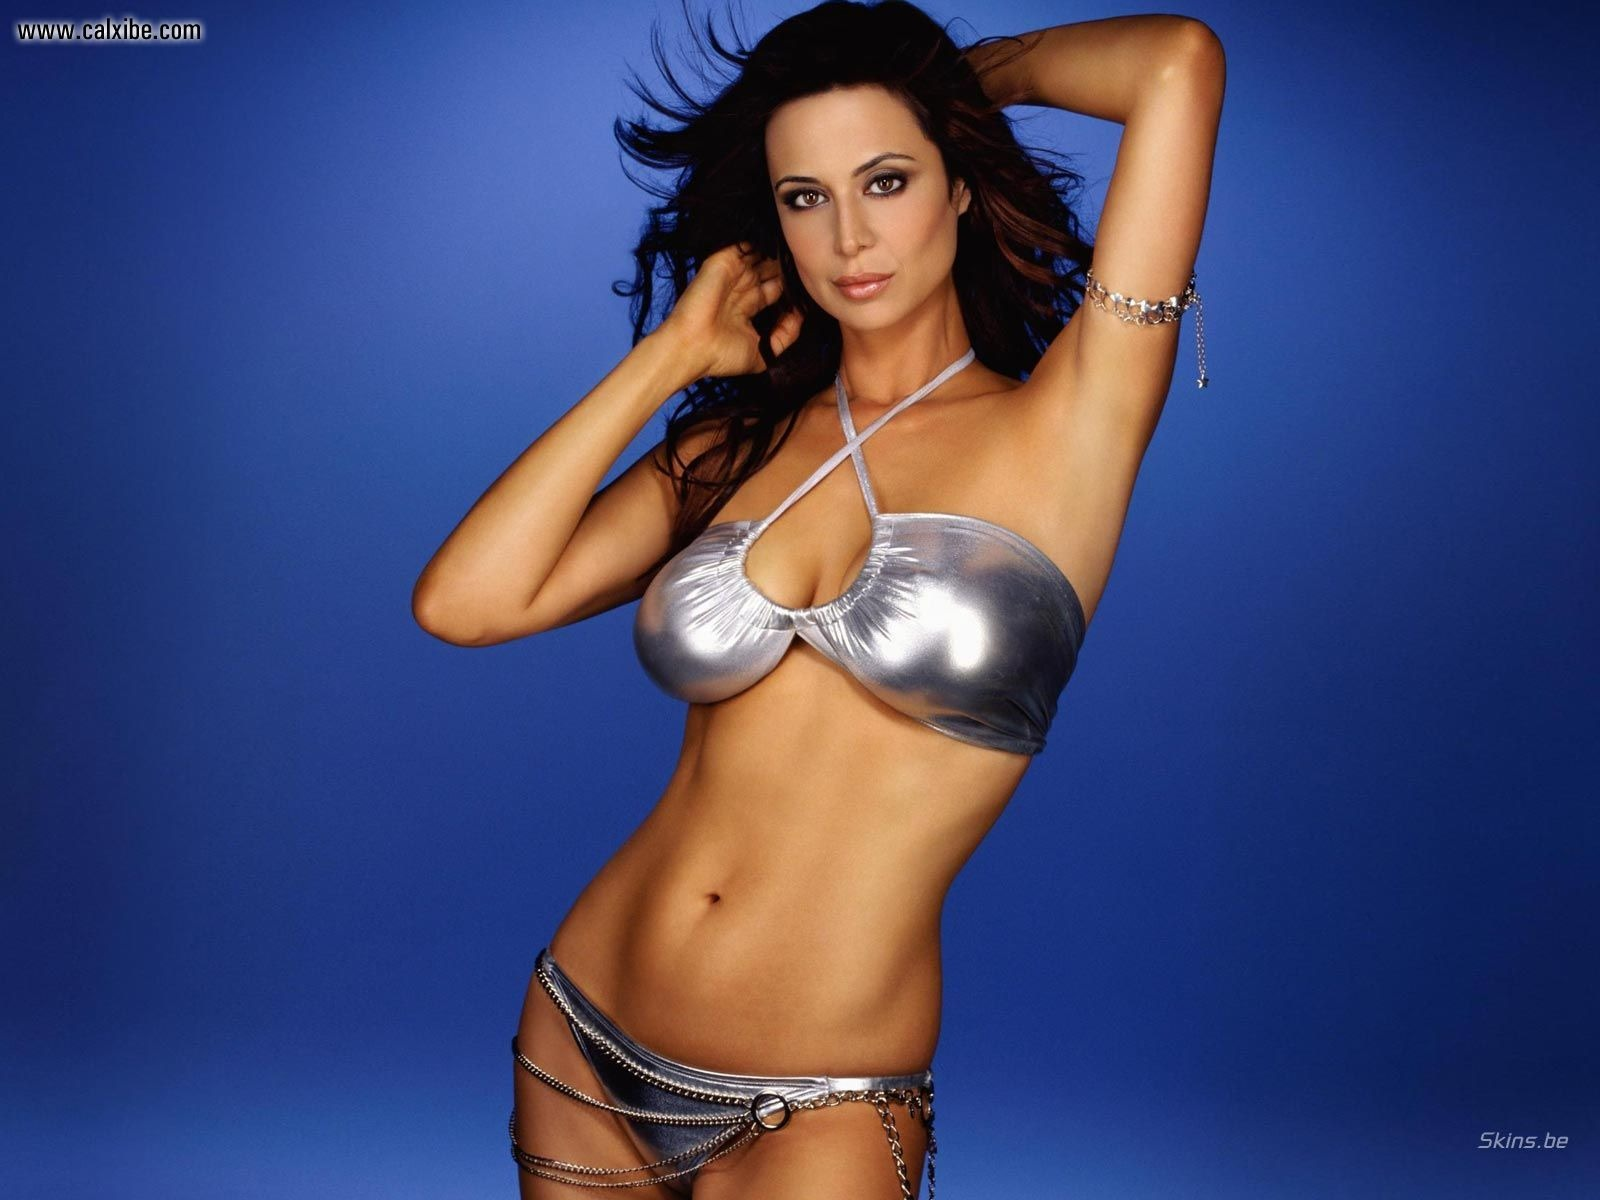 Catherine Bell #018 - 1600x1200 Wallpapers Pictures Photos Images